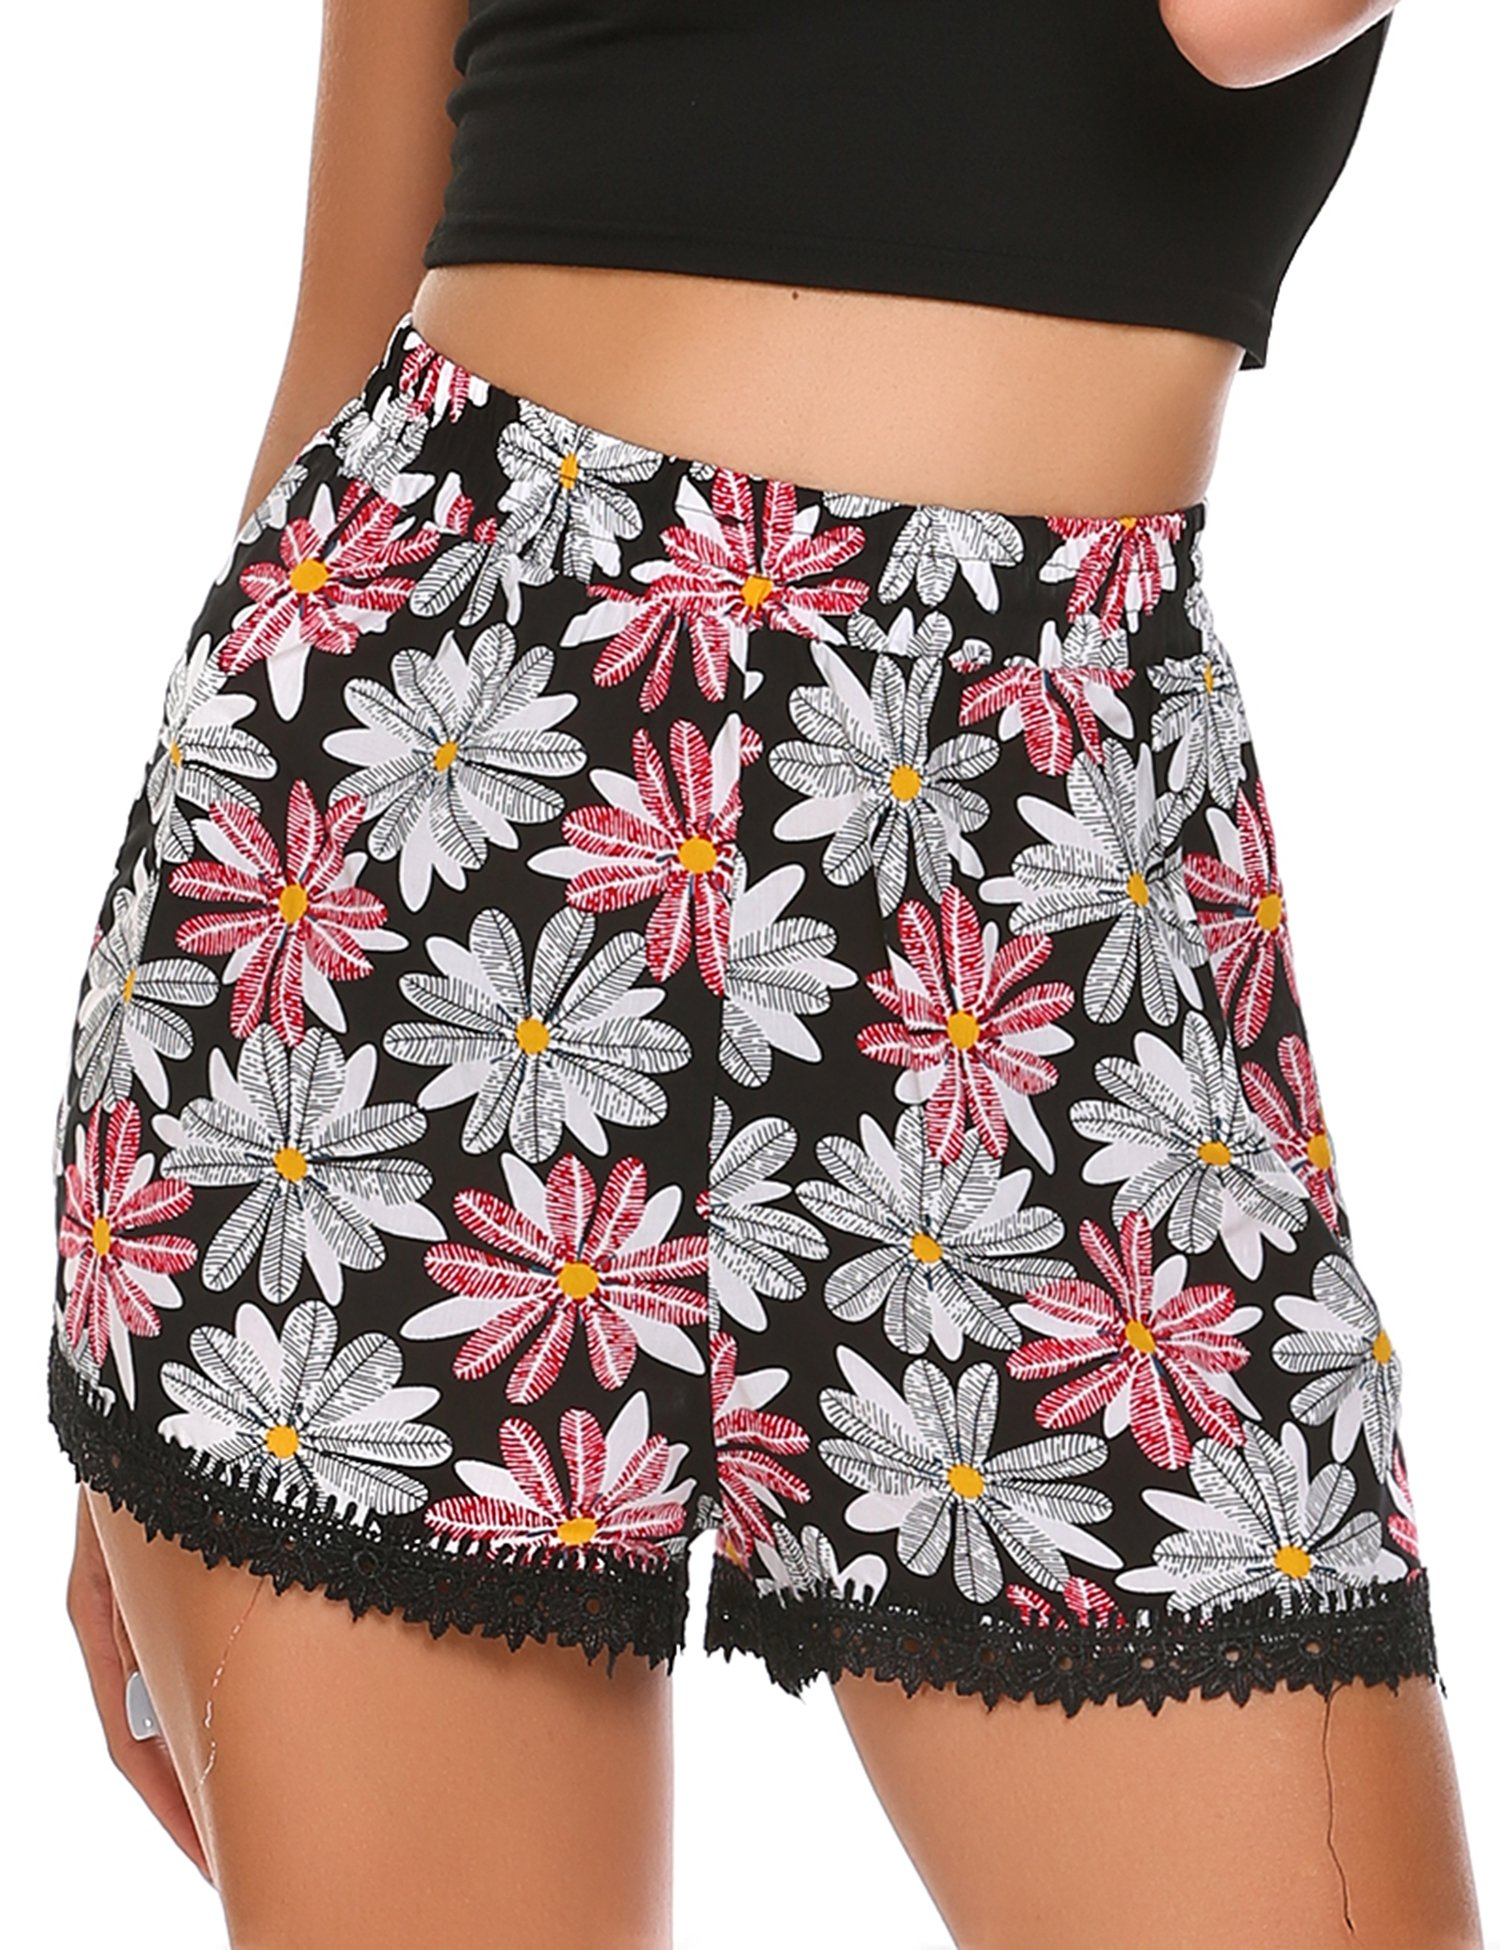 Zeagoo Women's High Waisted Print Lace Trim Summer Pom Beach Gym Mini Shorts Black-red Flower 2X Big